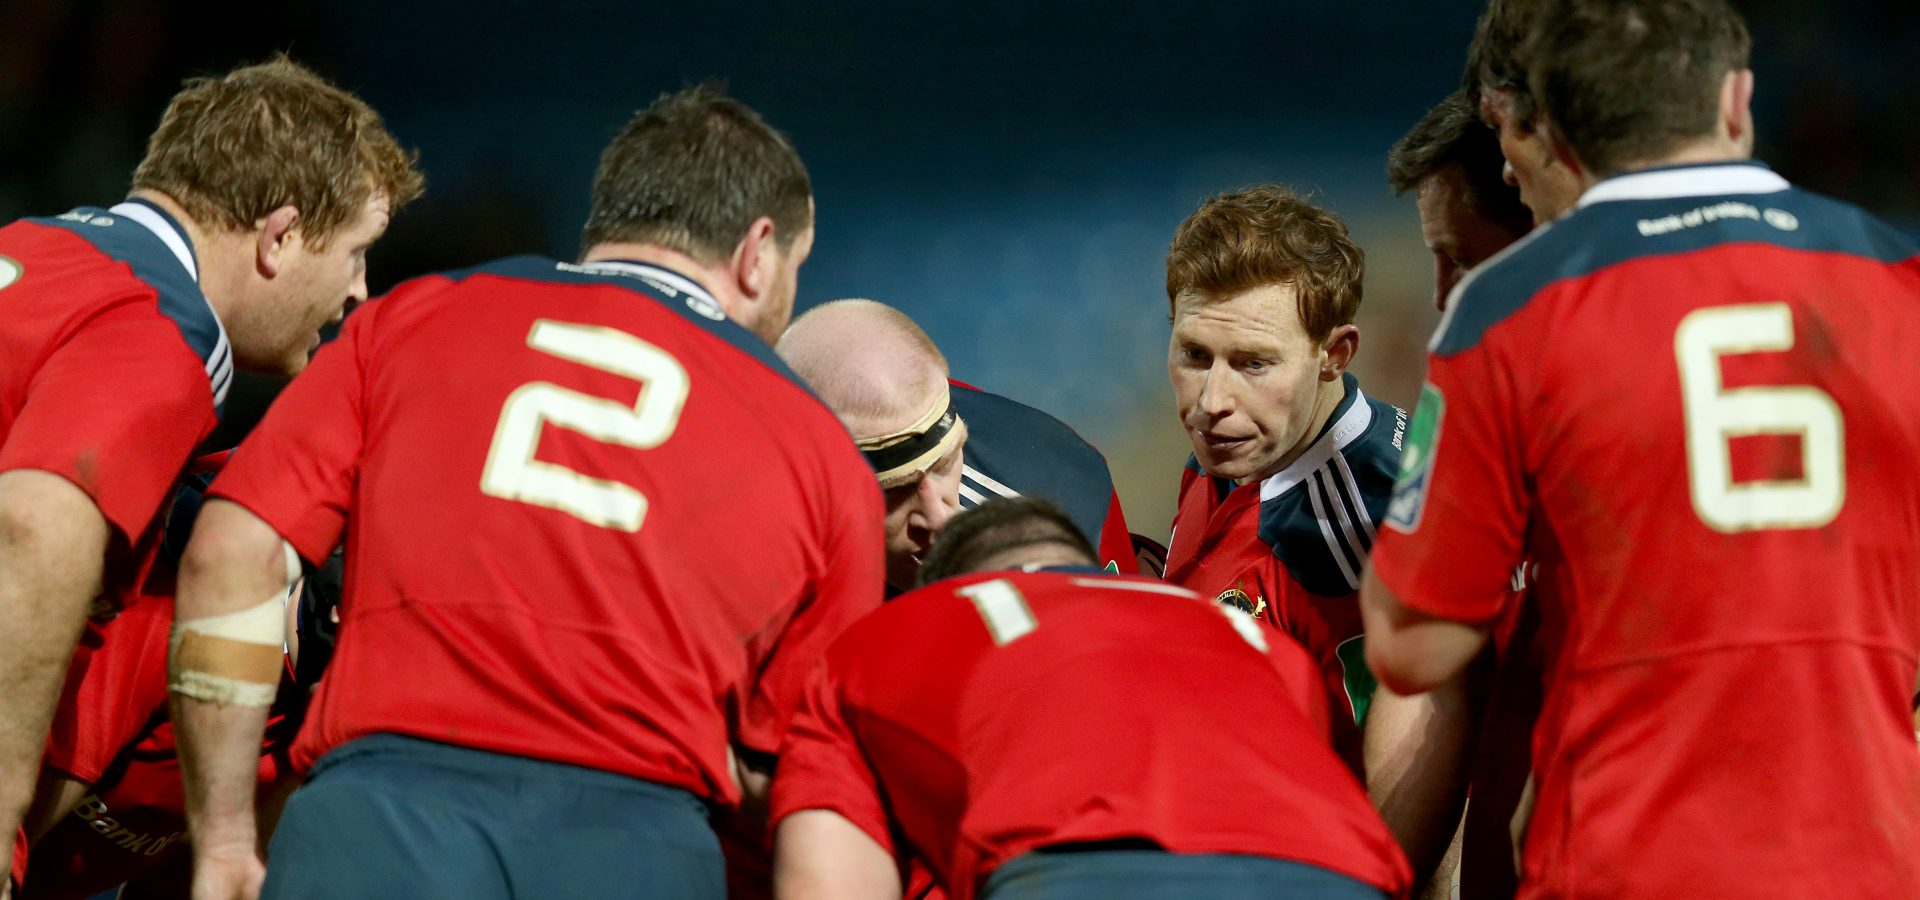 IMI/Rugby Players Ireland Scholarships Announced